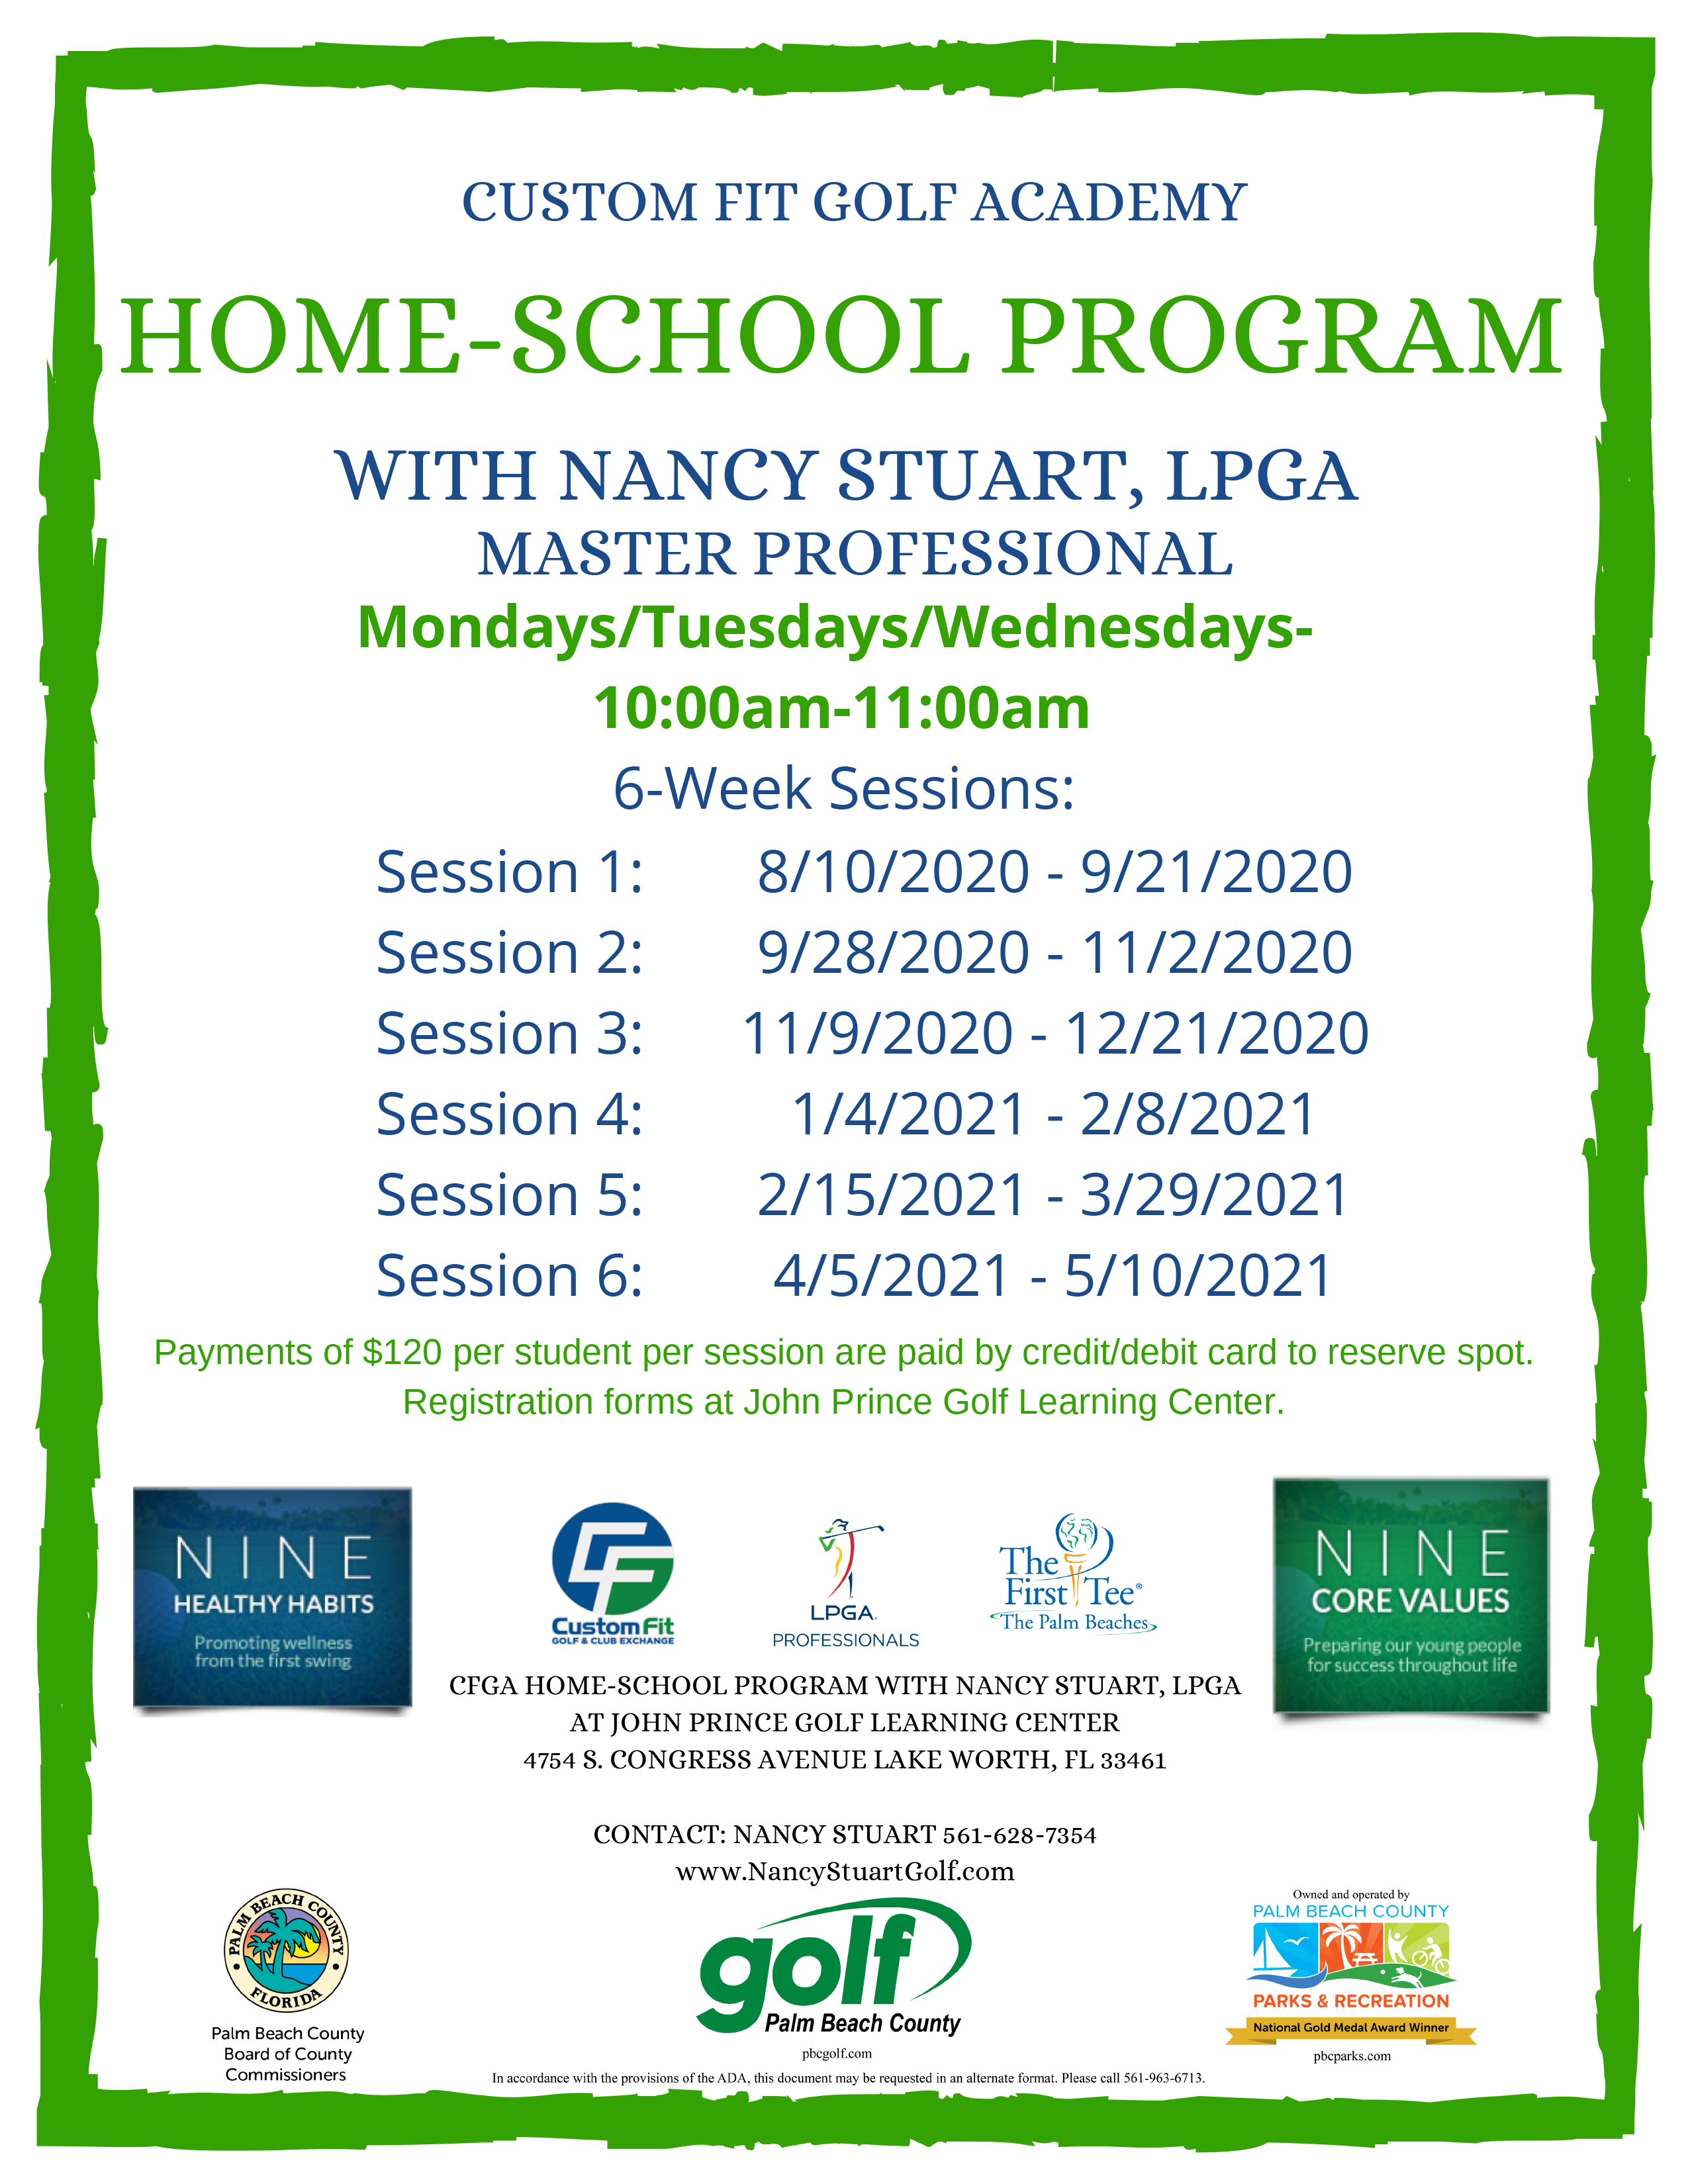 CFGA HOME SCHOOL PROGRAM